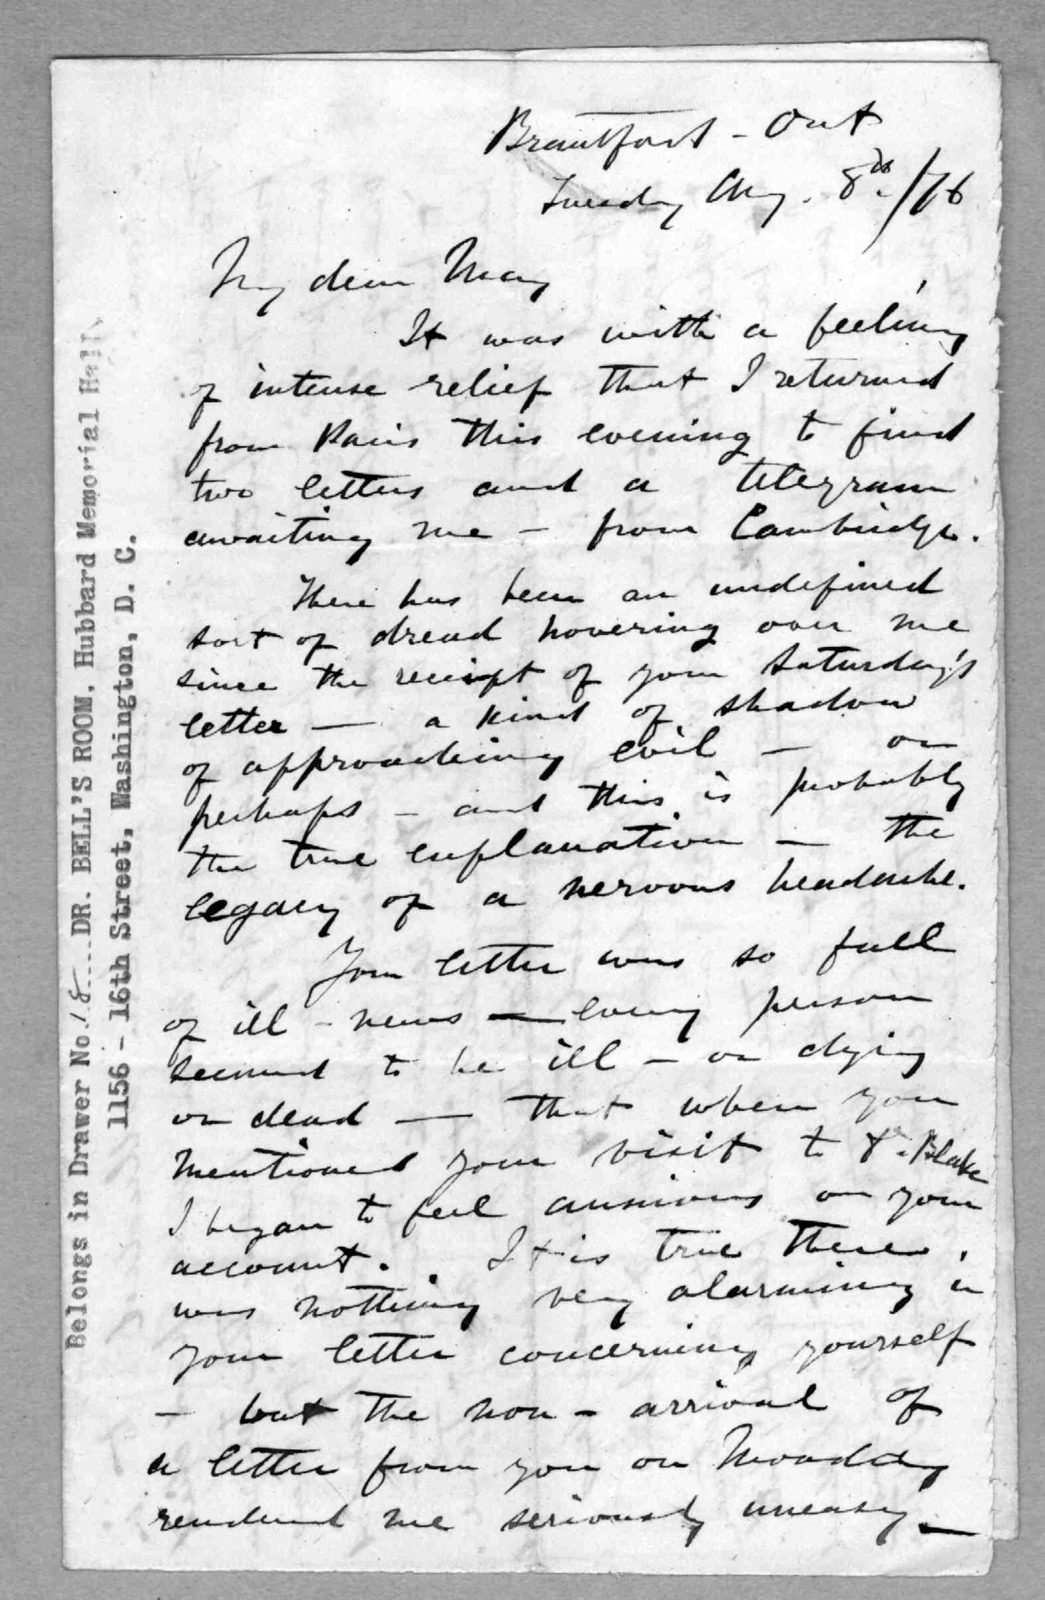 Letter from Alexander Graham Bell to Mabel Hubbard Bell, August 8, 1876